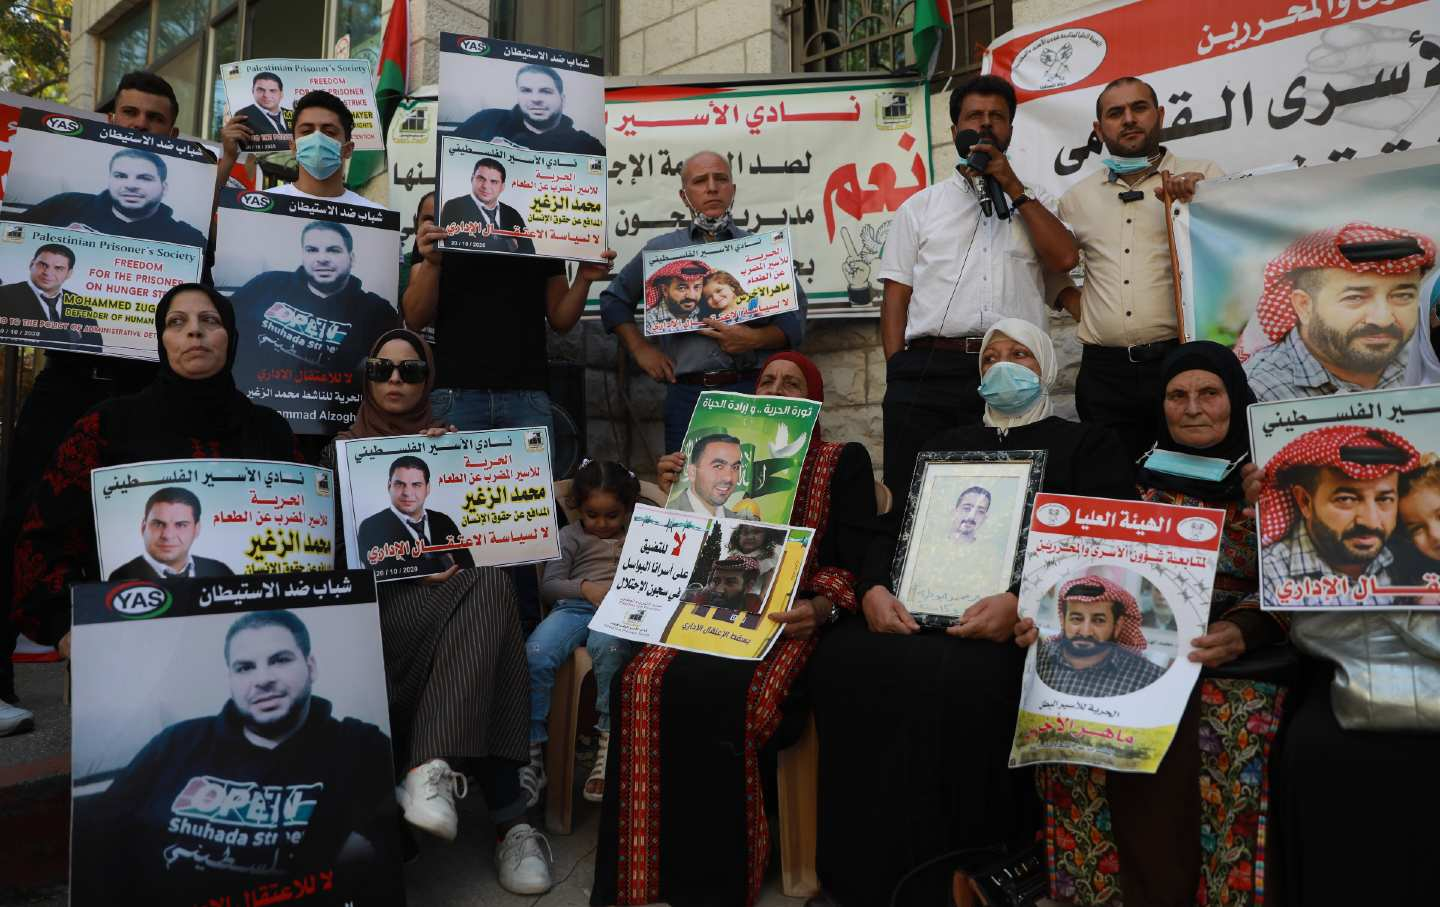 A crowd of people sit and stand holding posters, some bearing the picture of Maher al-Akhras.